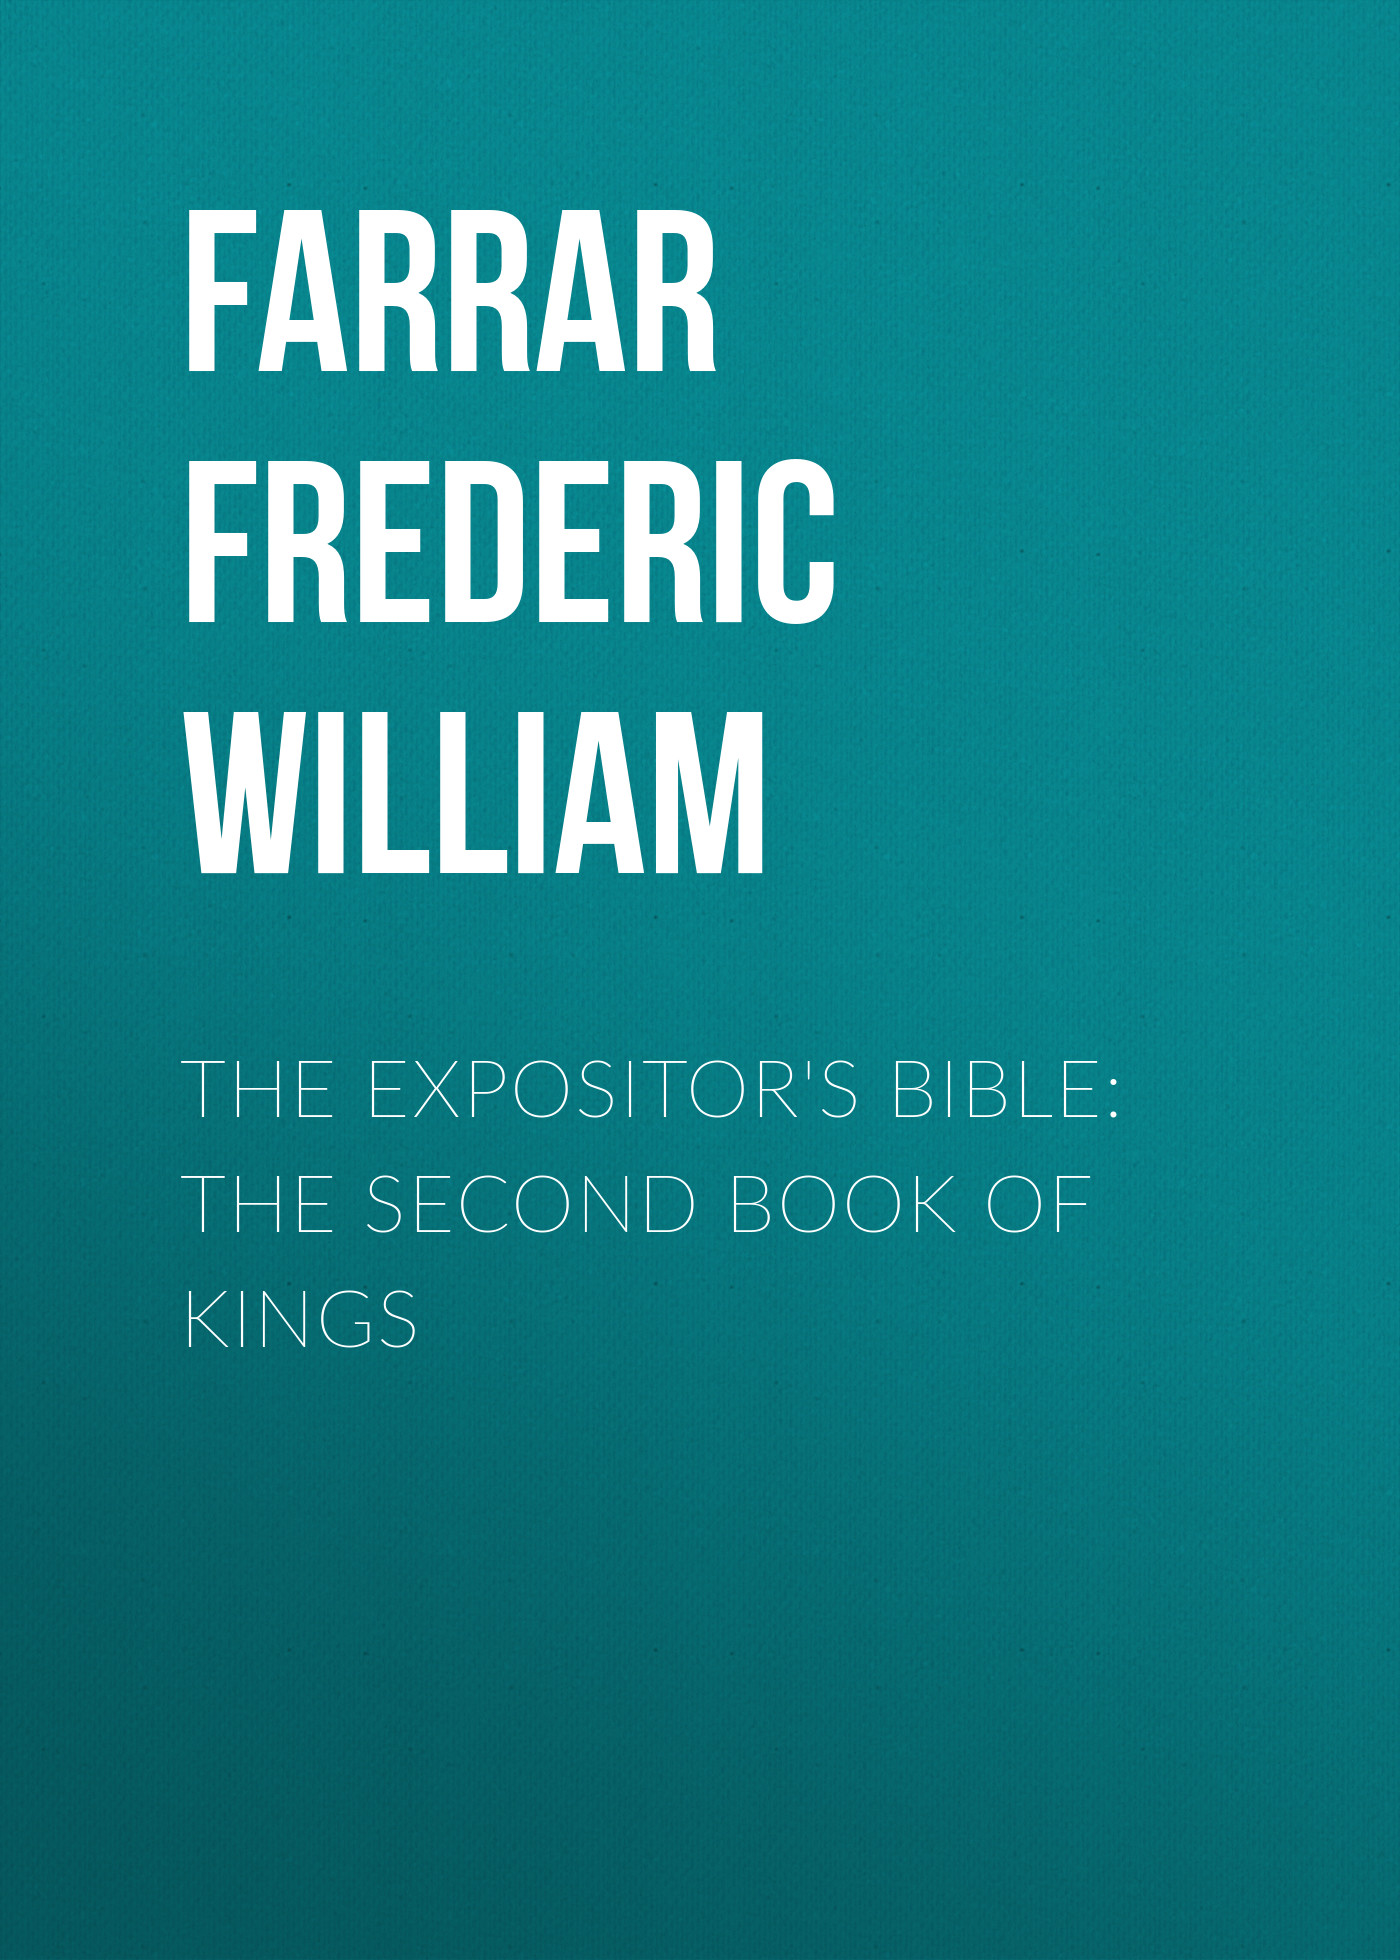 Farrar Frederic William The Expositor's Bible: The Second Book of Kings william h ukers all about coffee second edition